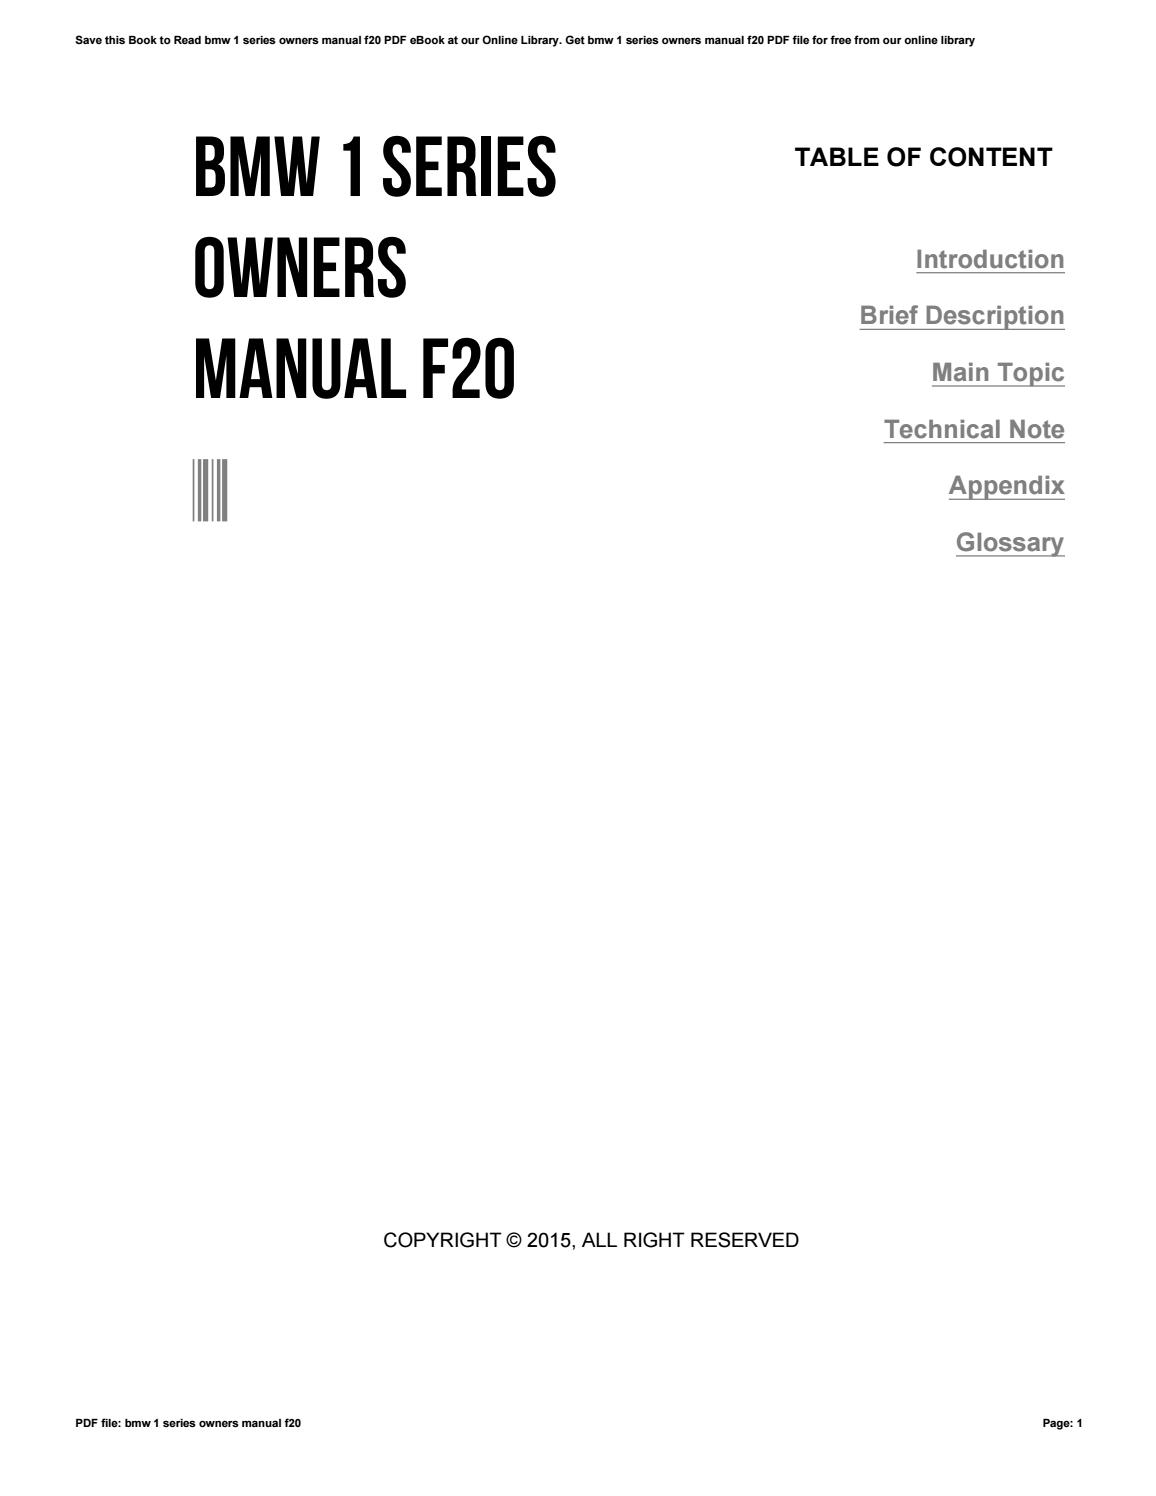 Bmw 1 series owners manual f20 by dfg639 - issuu